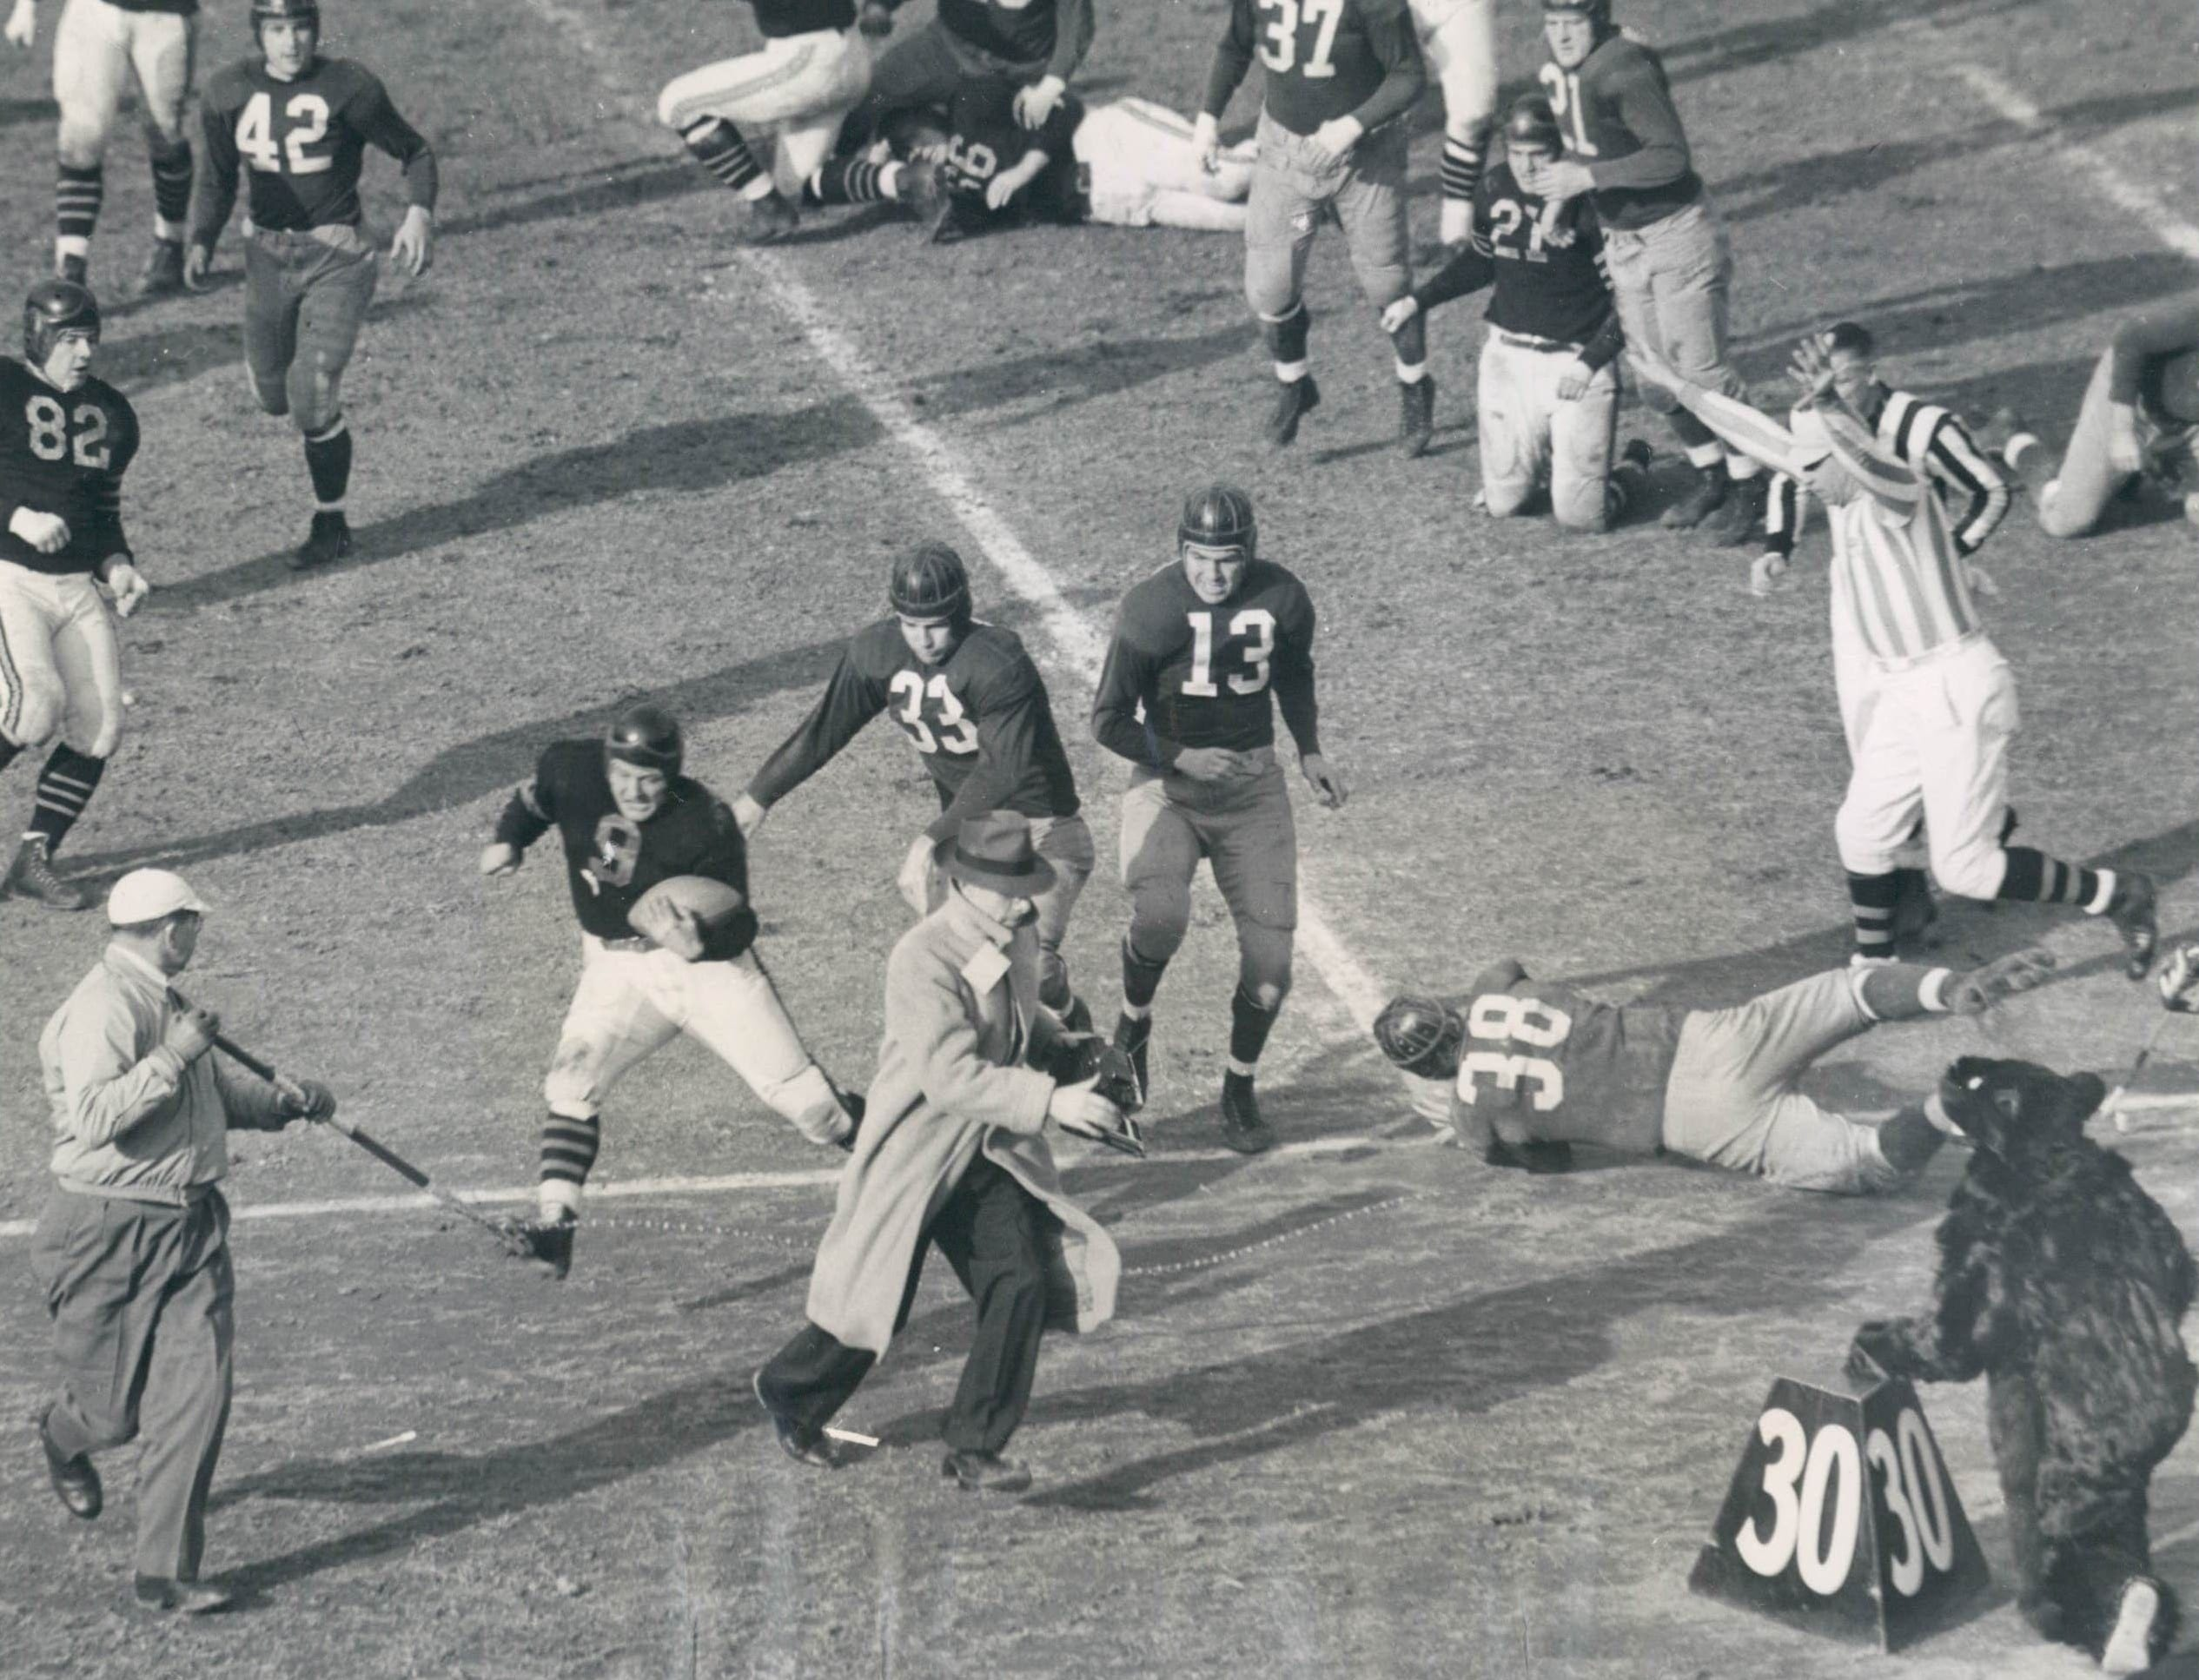 Sideline operatives camper as Bear goes out. Big Bill Osmanski, Chicago Bear Fullback, drove out of bounds on this play and sent a cameraman, lineman and the team's mascot scampering. Redskins, Sammy Baugh (No. 33) and Ed Justice (No. 13) was close behind Osmanski. Associated Press photo